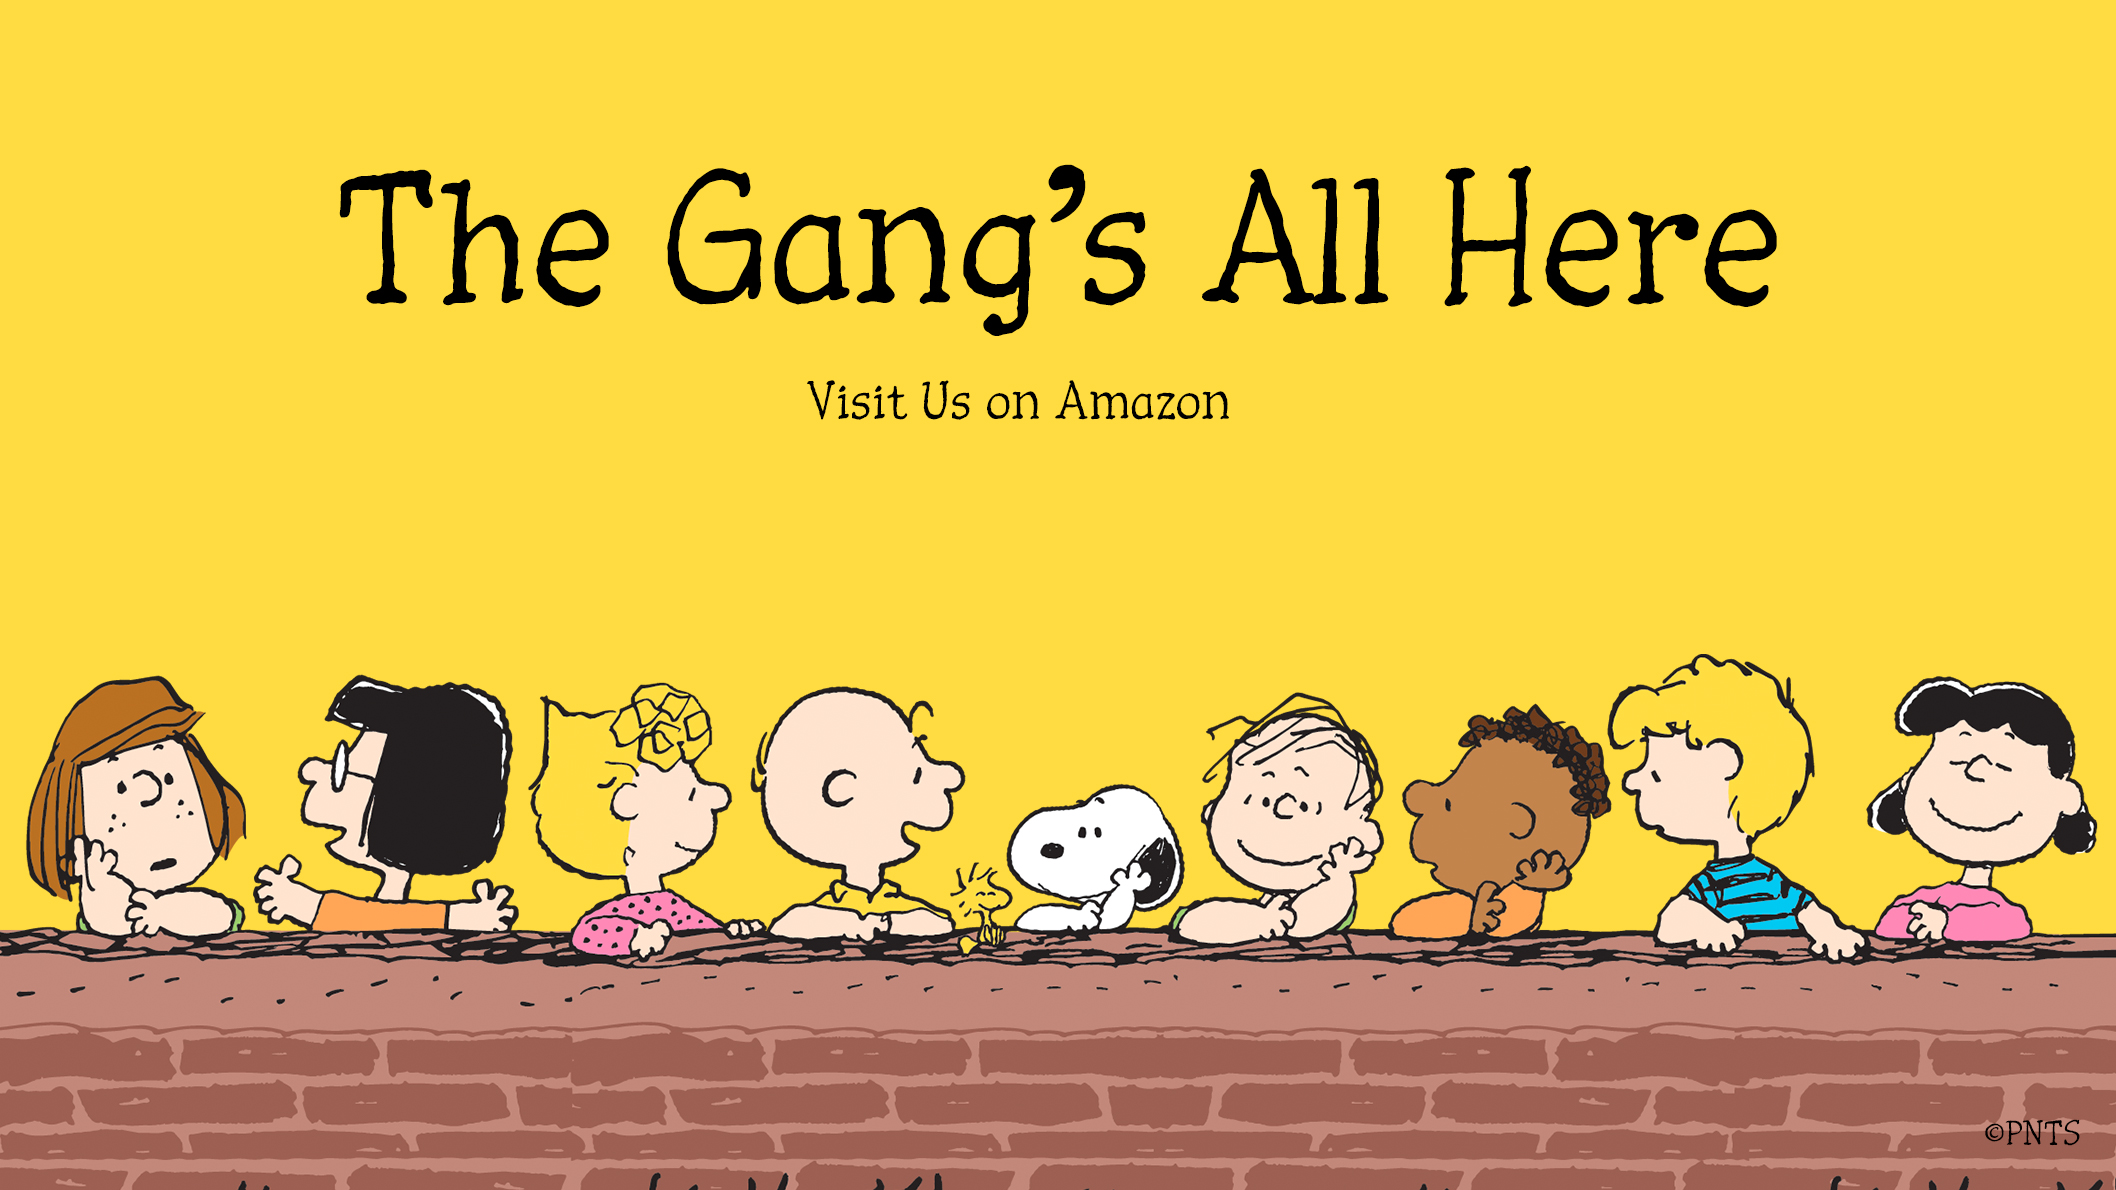 Image of a bunch of kids and black and white dog with text The Gang's All Here - Visit us on Amazon